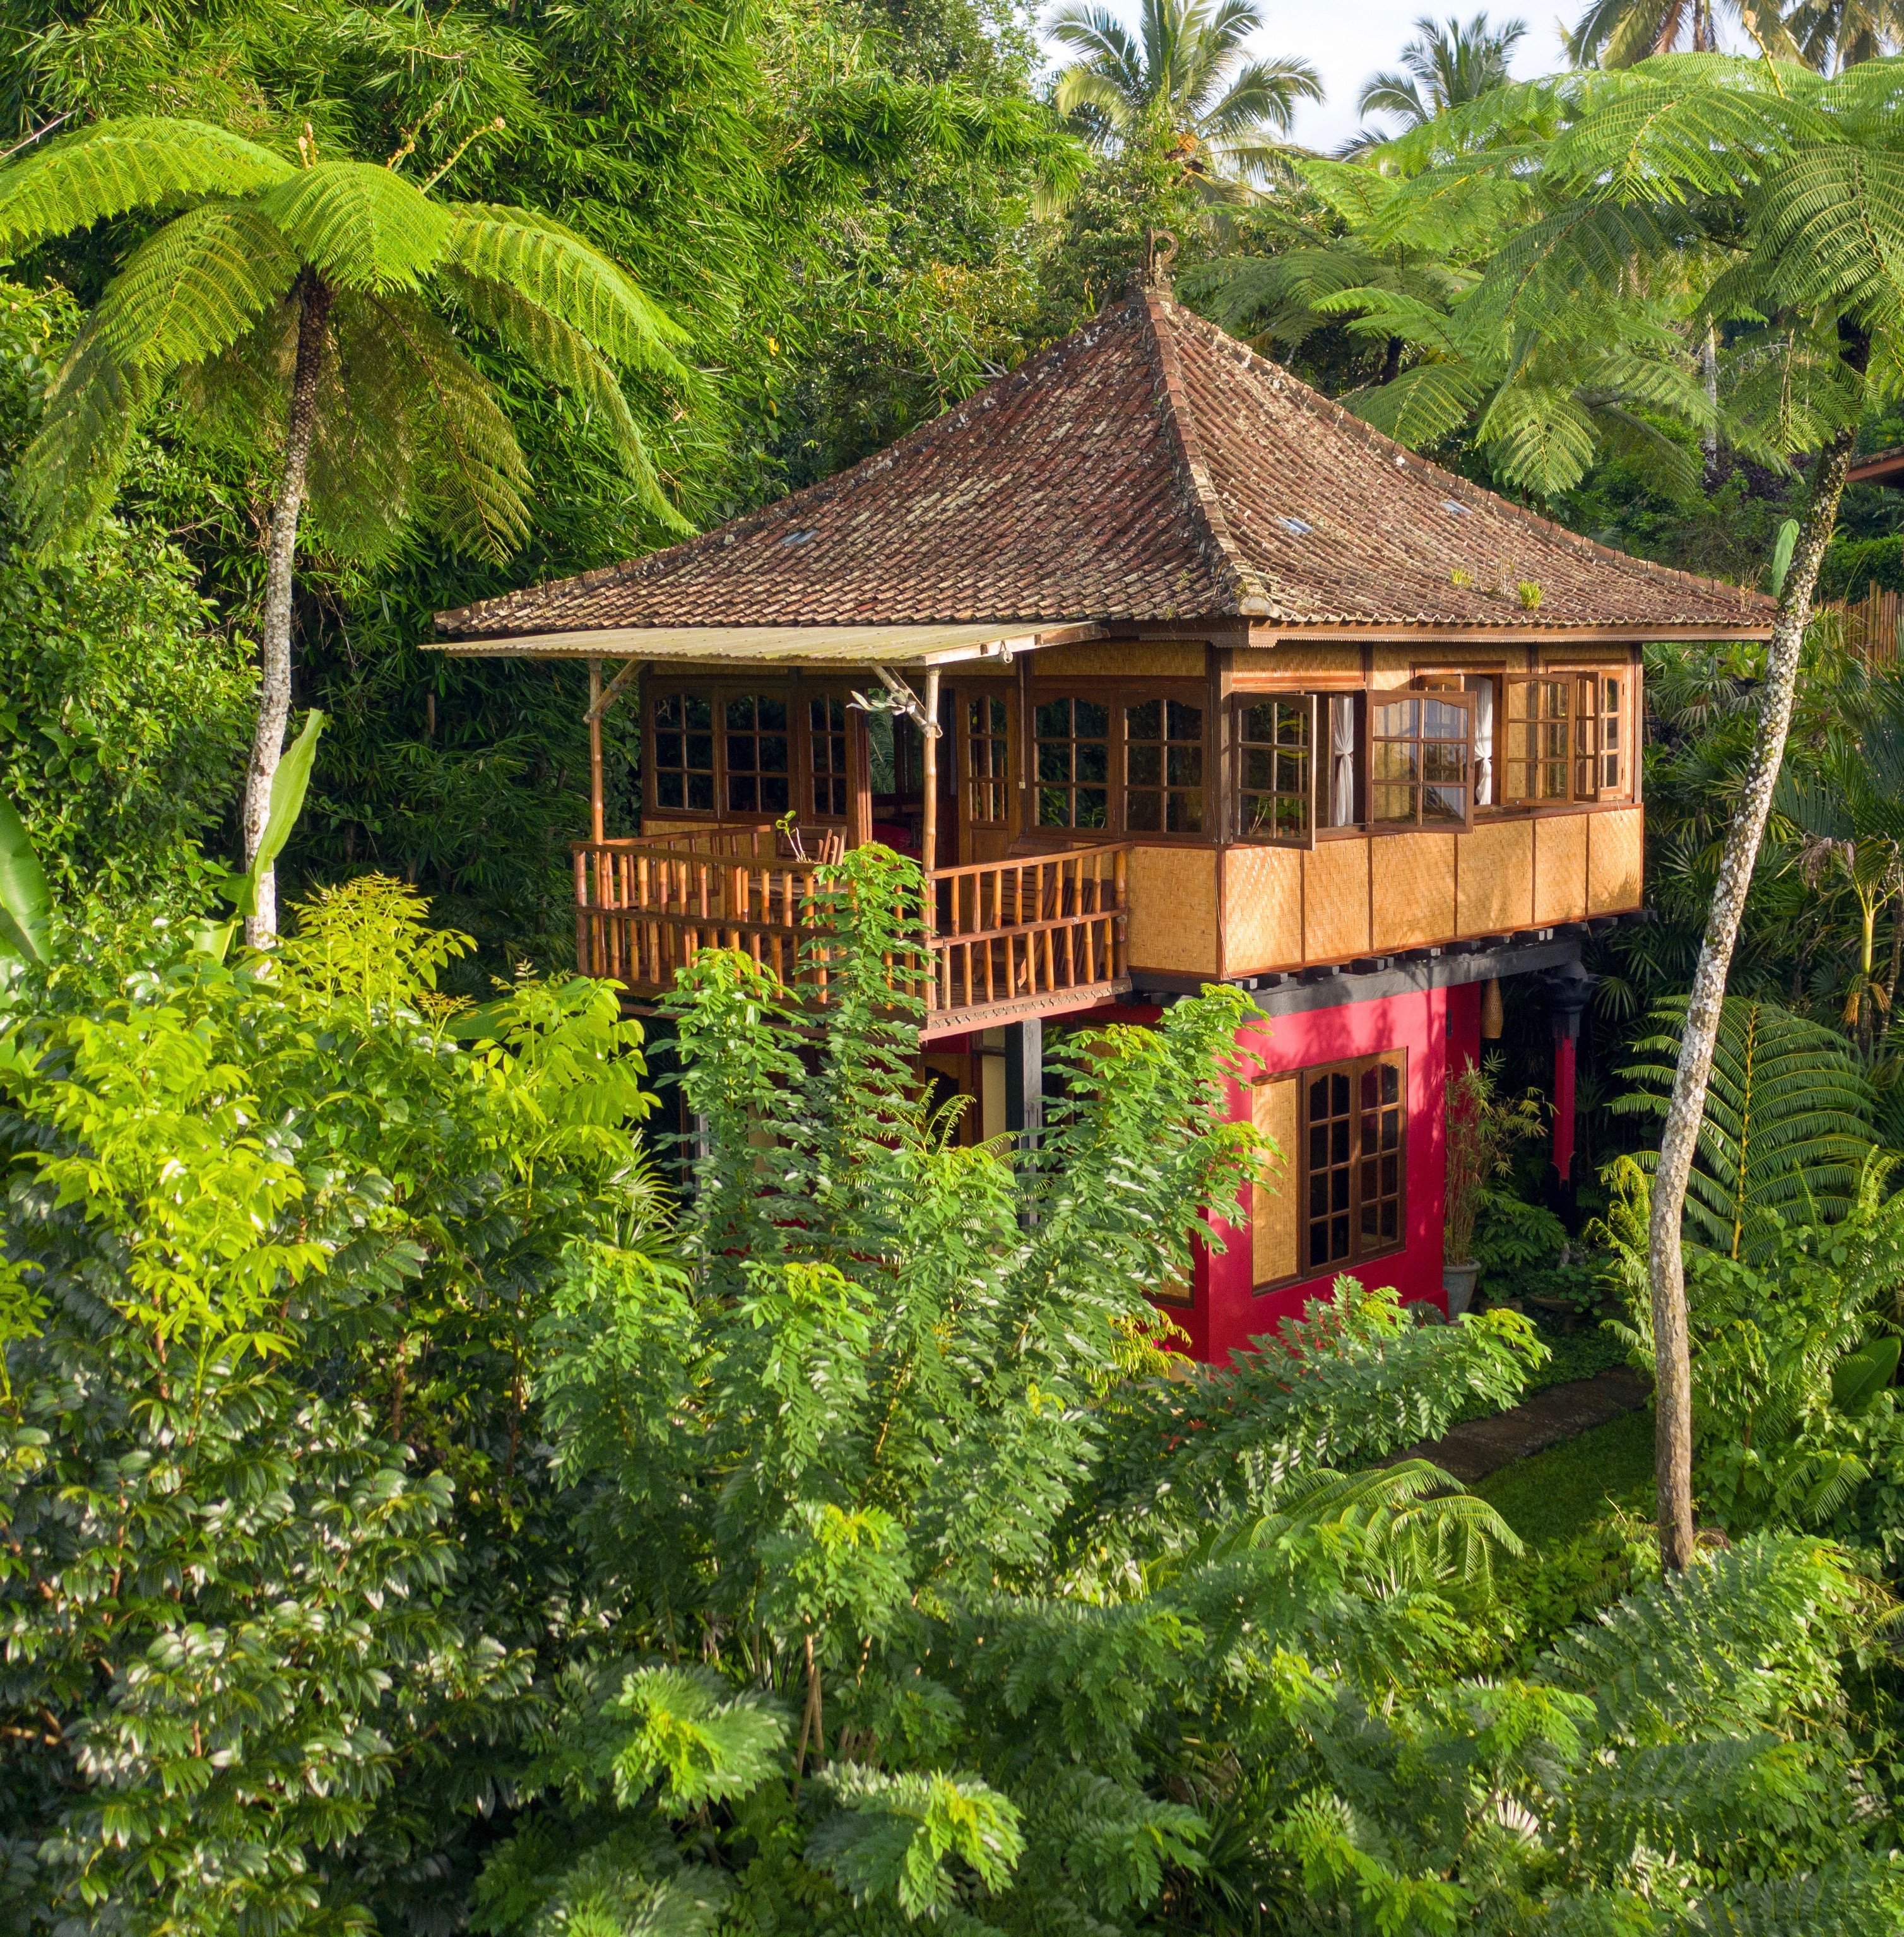 The Jungle Bungalow Sleeps 2-5